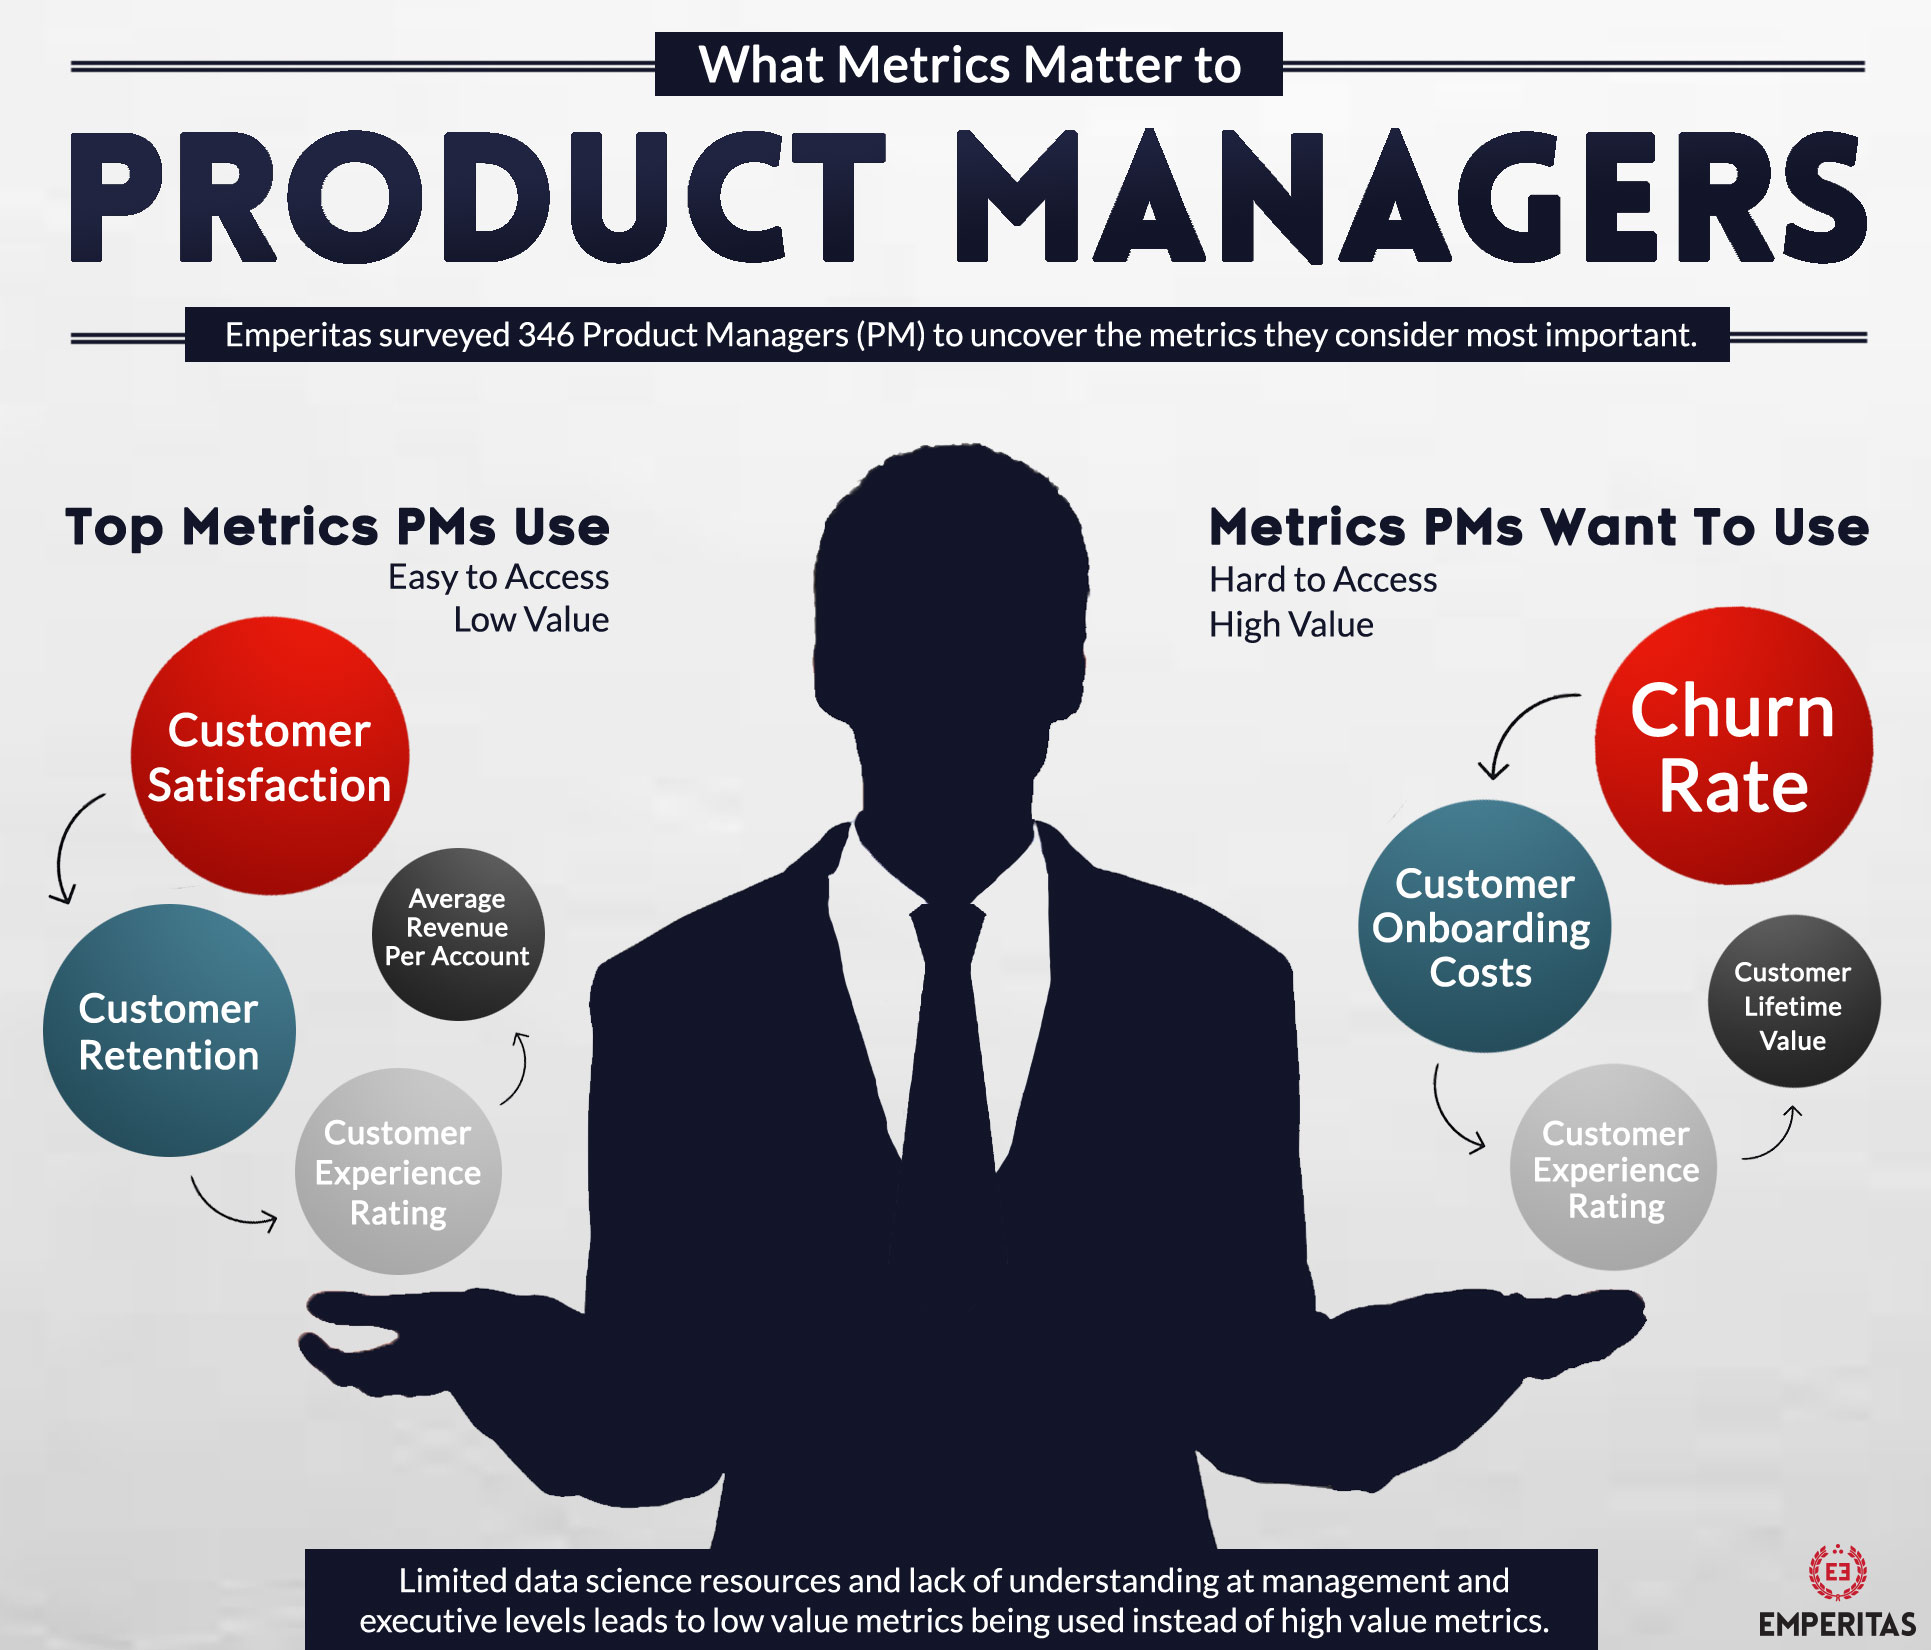 product-managers-top-metrics-emperitas